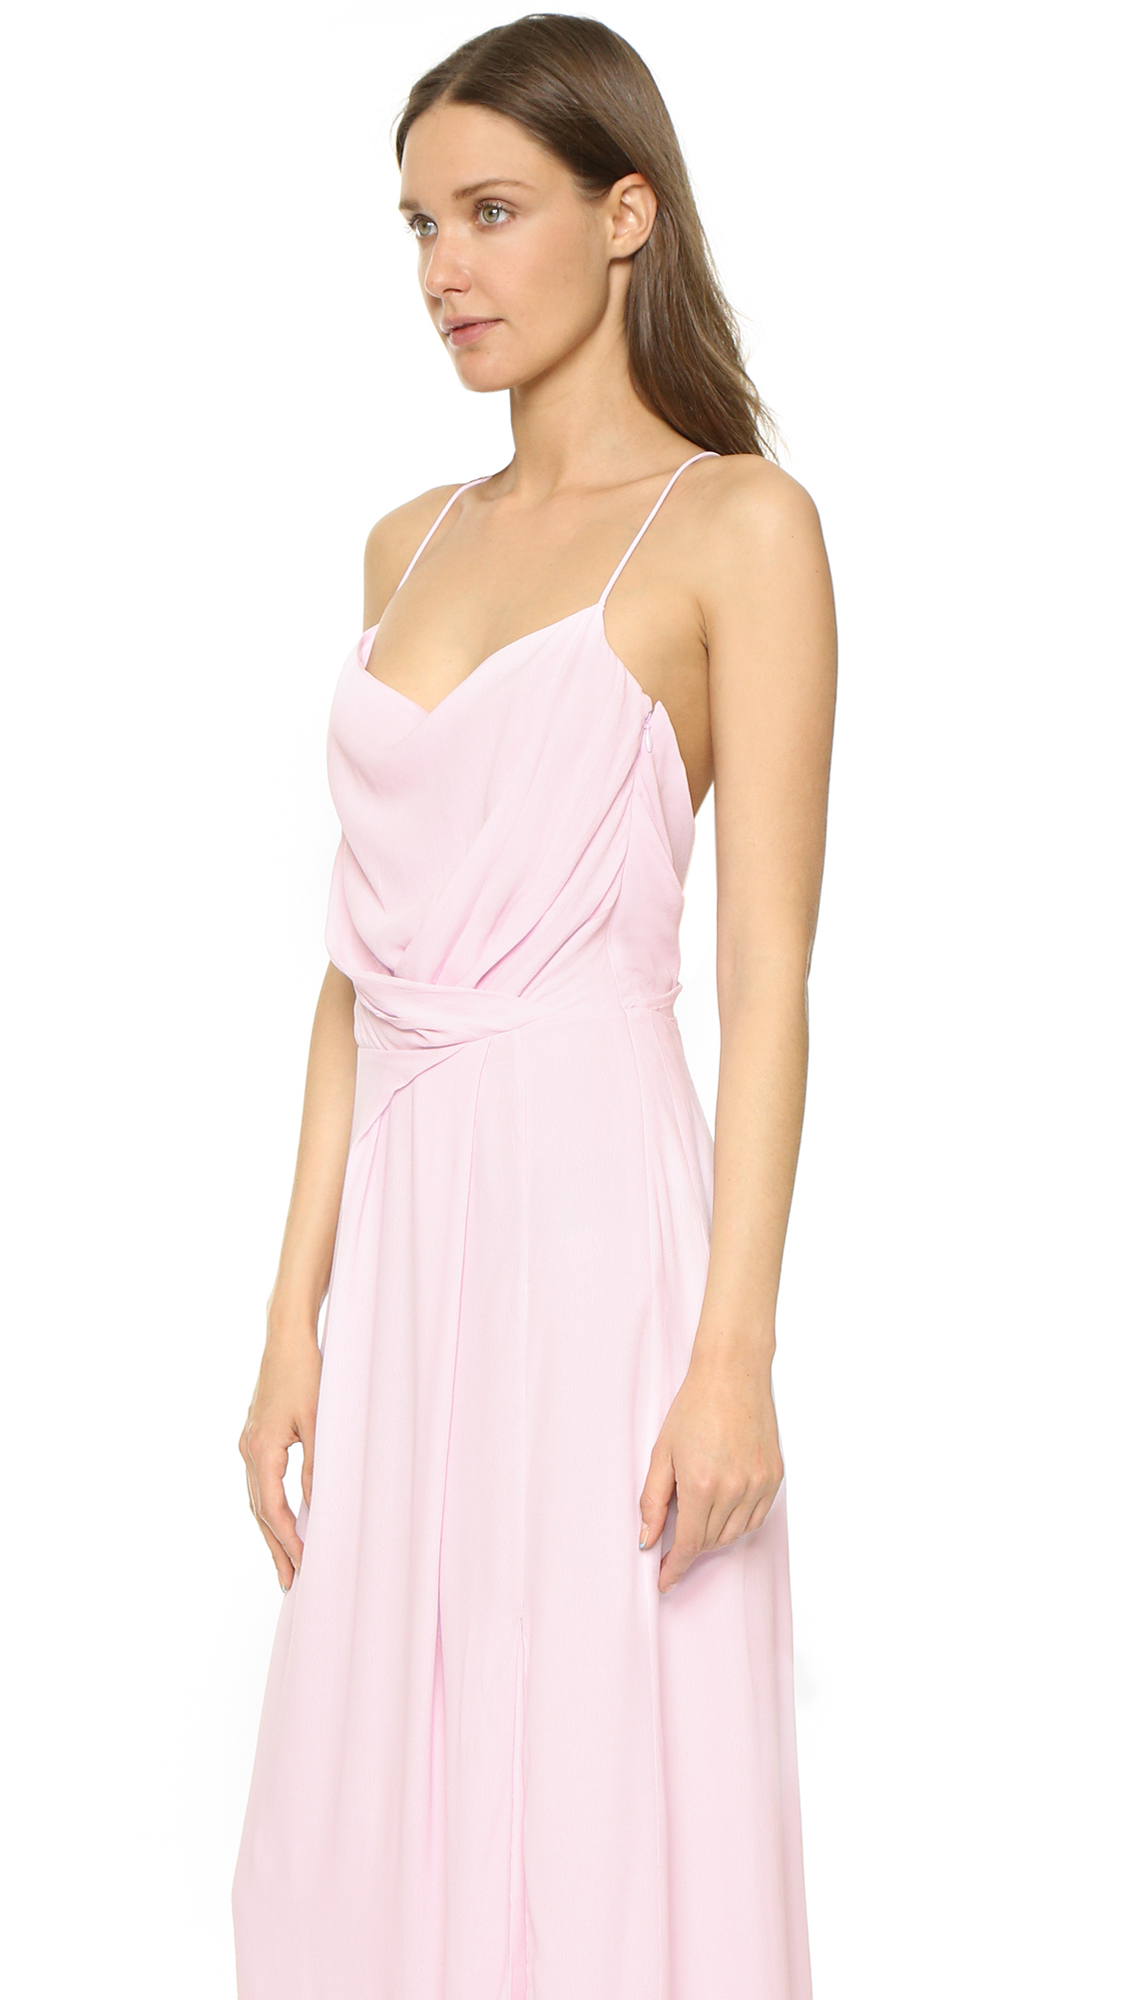 Lyst - Carven Drape Gown - Poudre in Pink